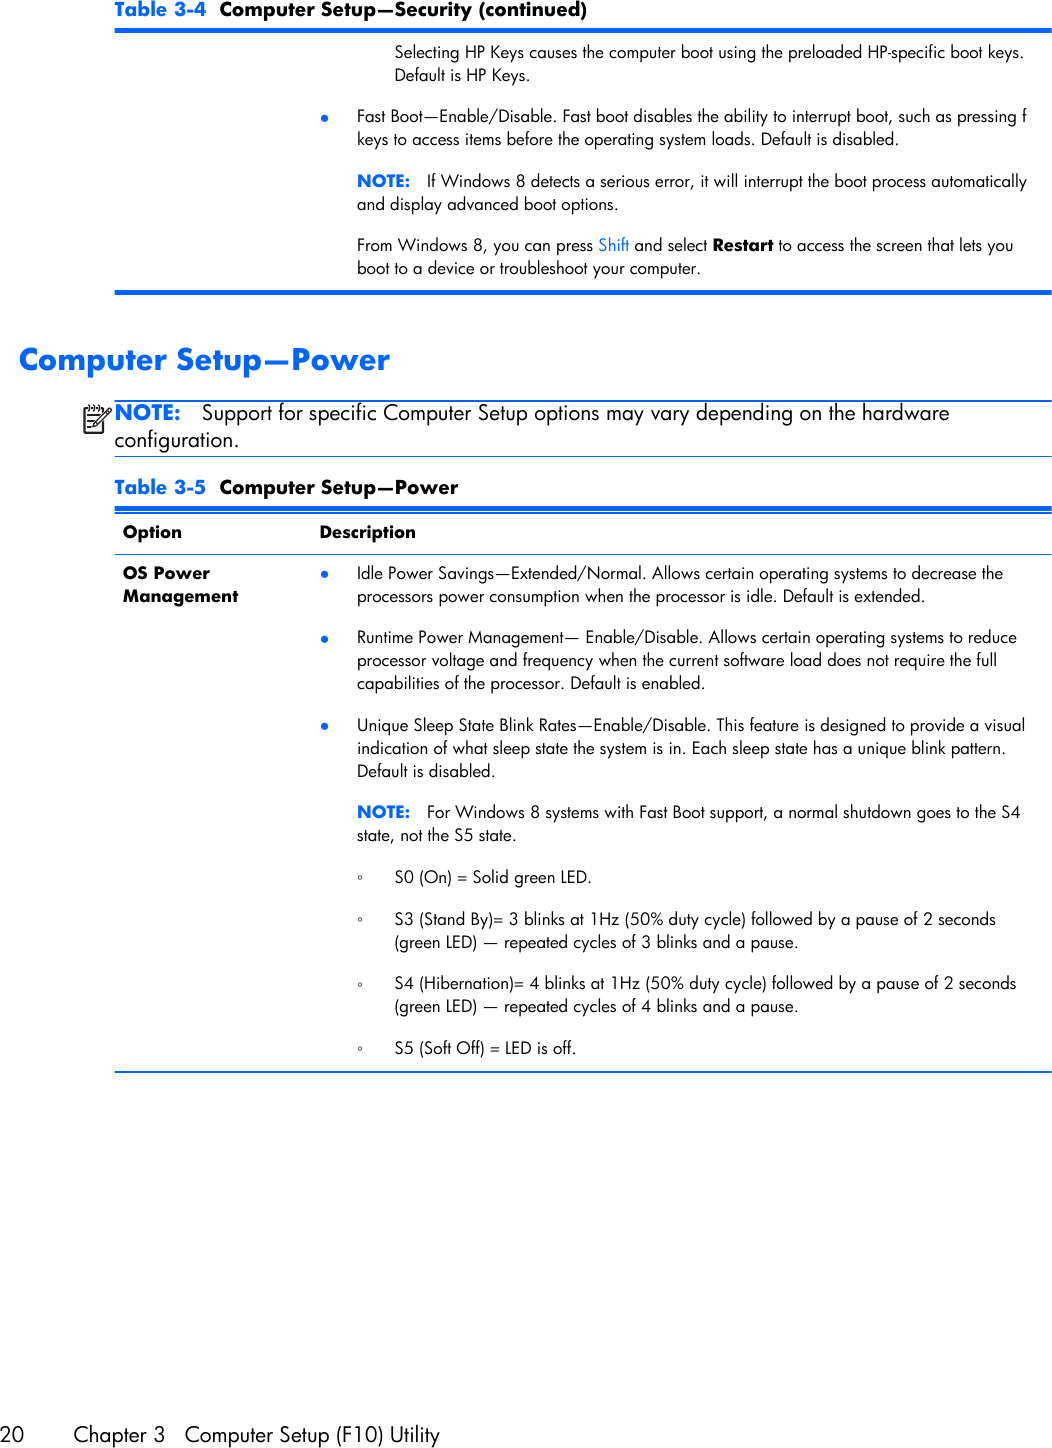 Hp Compaq Pro 6300 Small Form Factor Pc Reference Guide